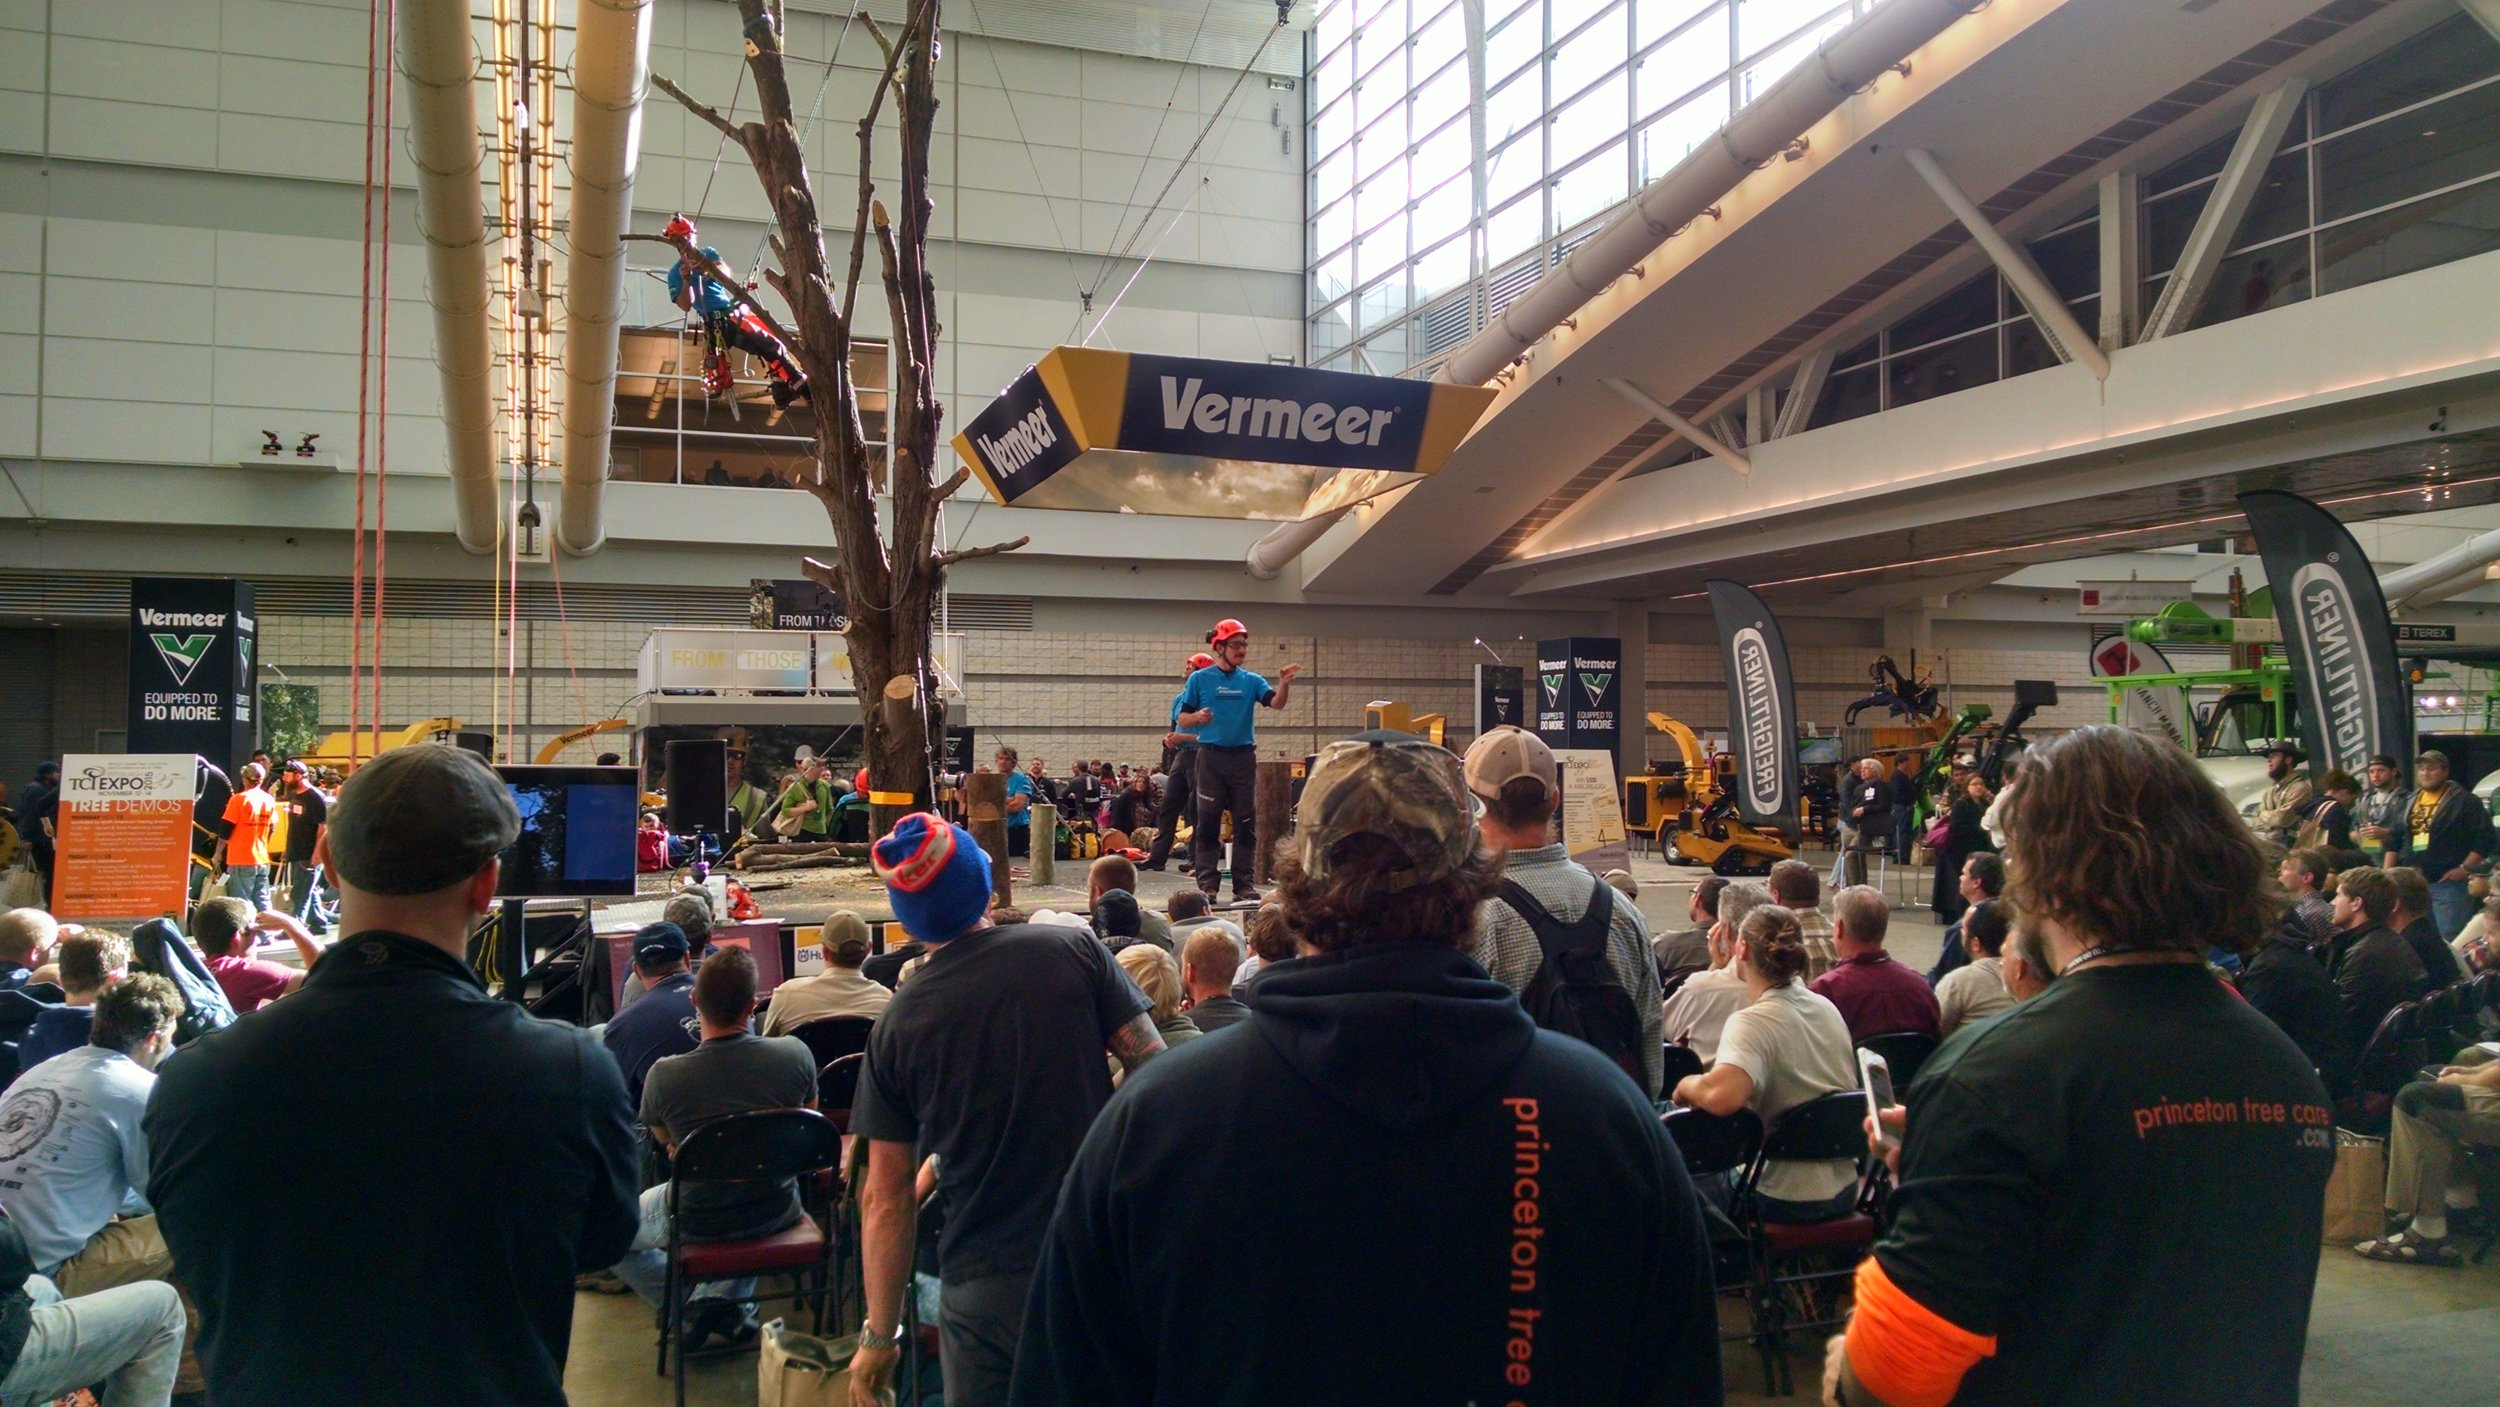 The biggest names in arboriculture gathered for workshops, seminars and live demonstrations by tree climbing champions.